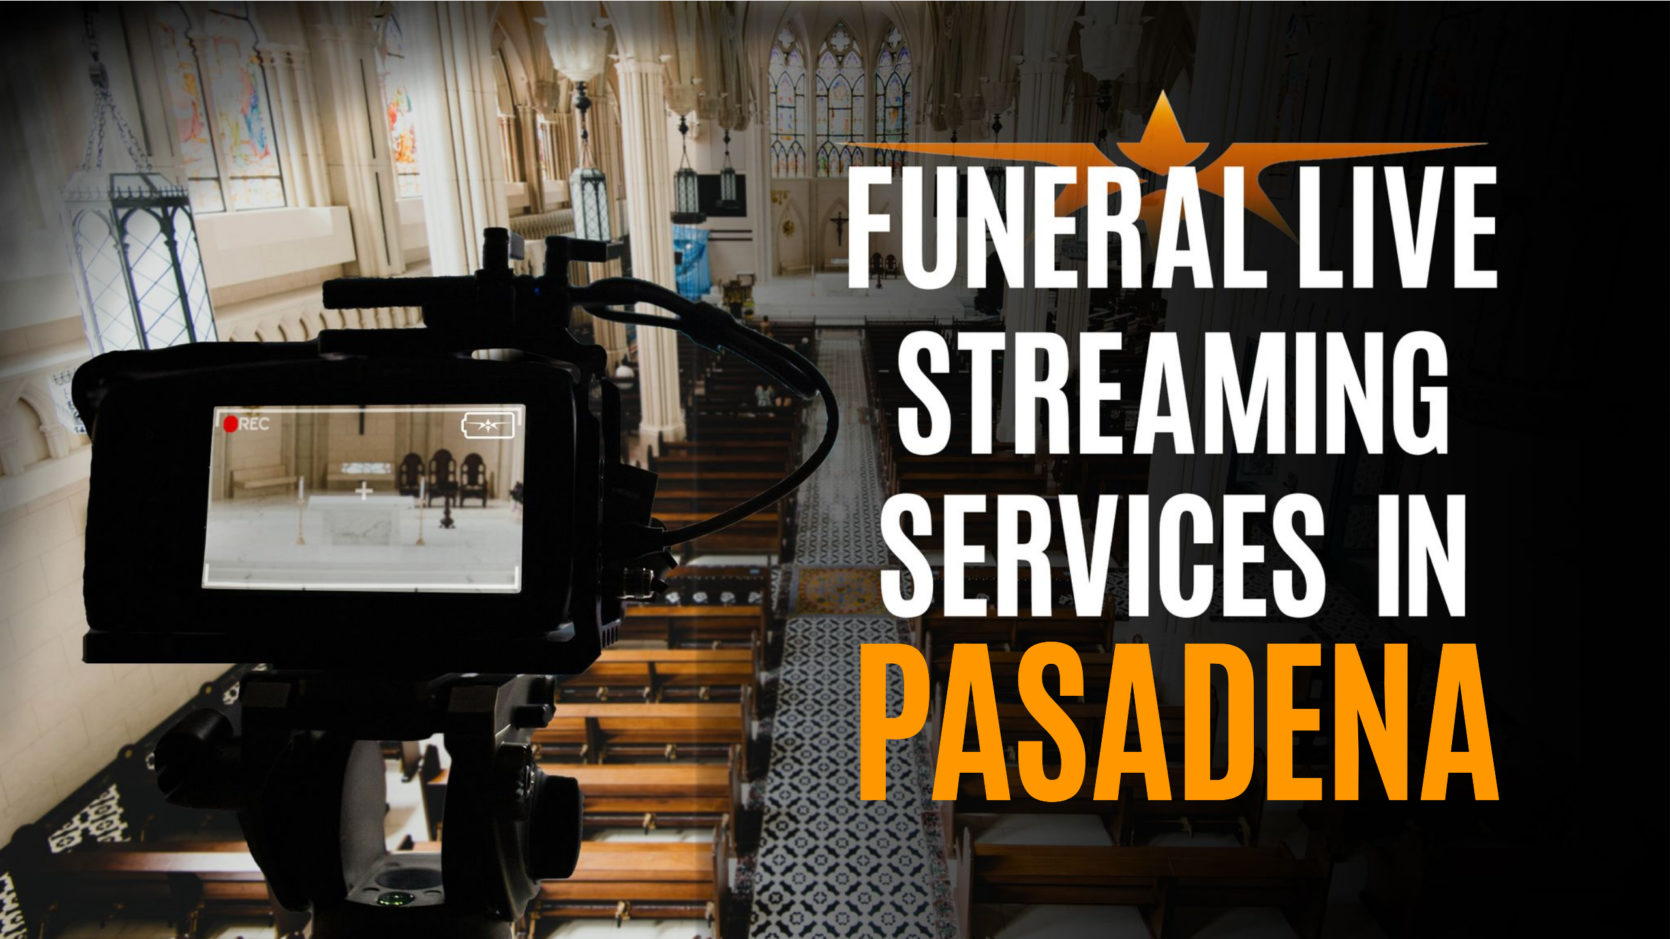 Funeral Live Streaming Services in Pasadena